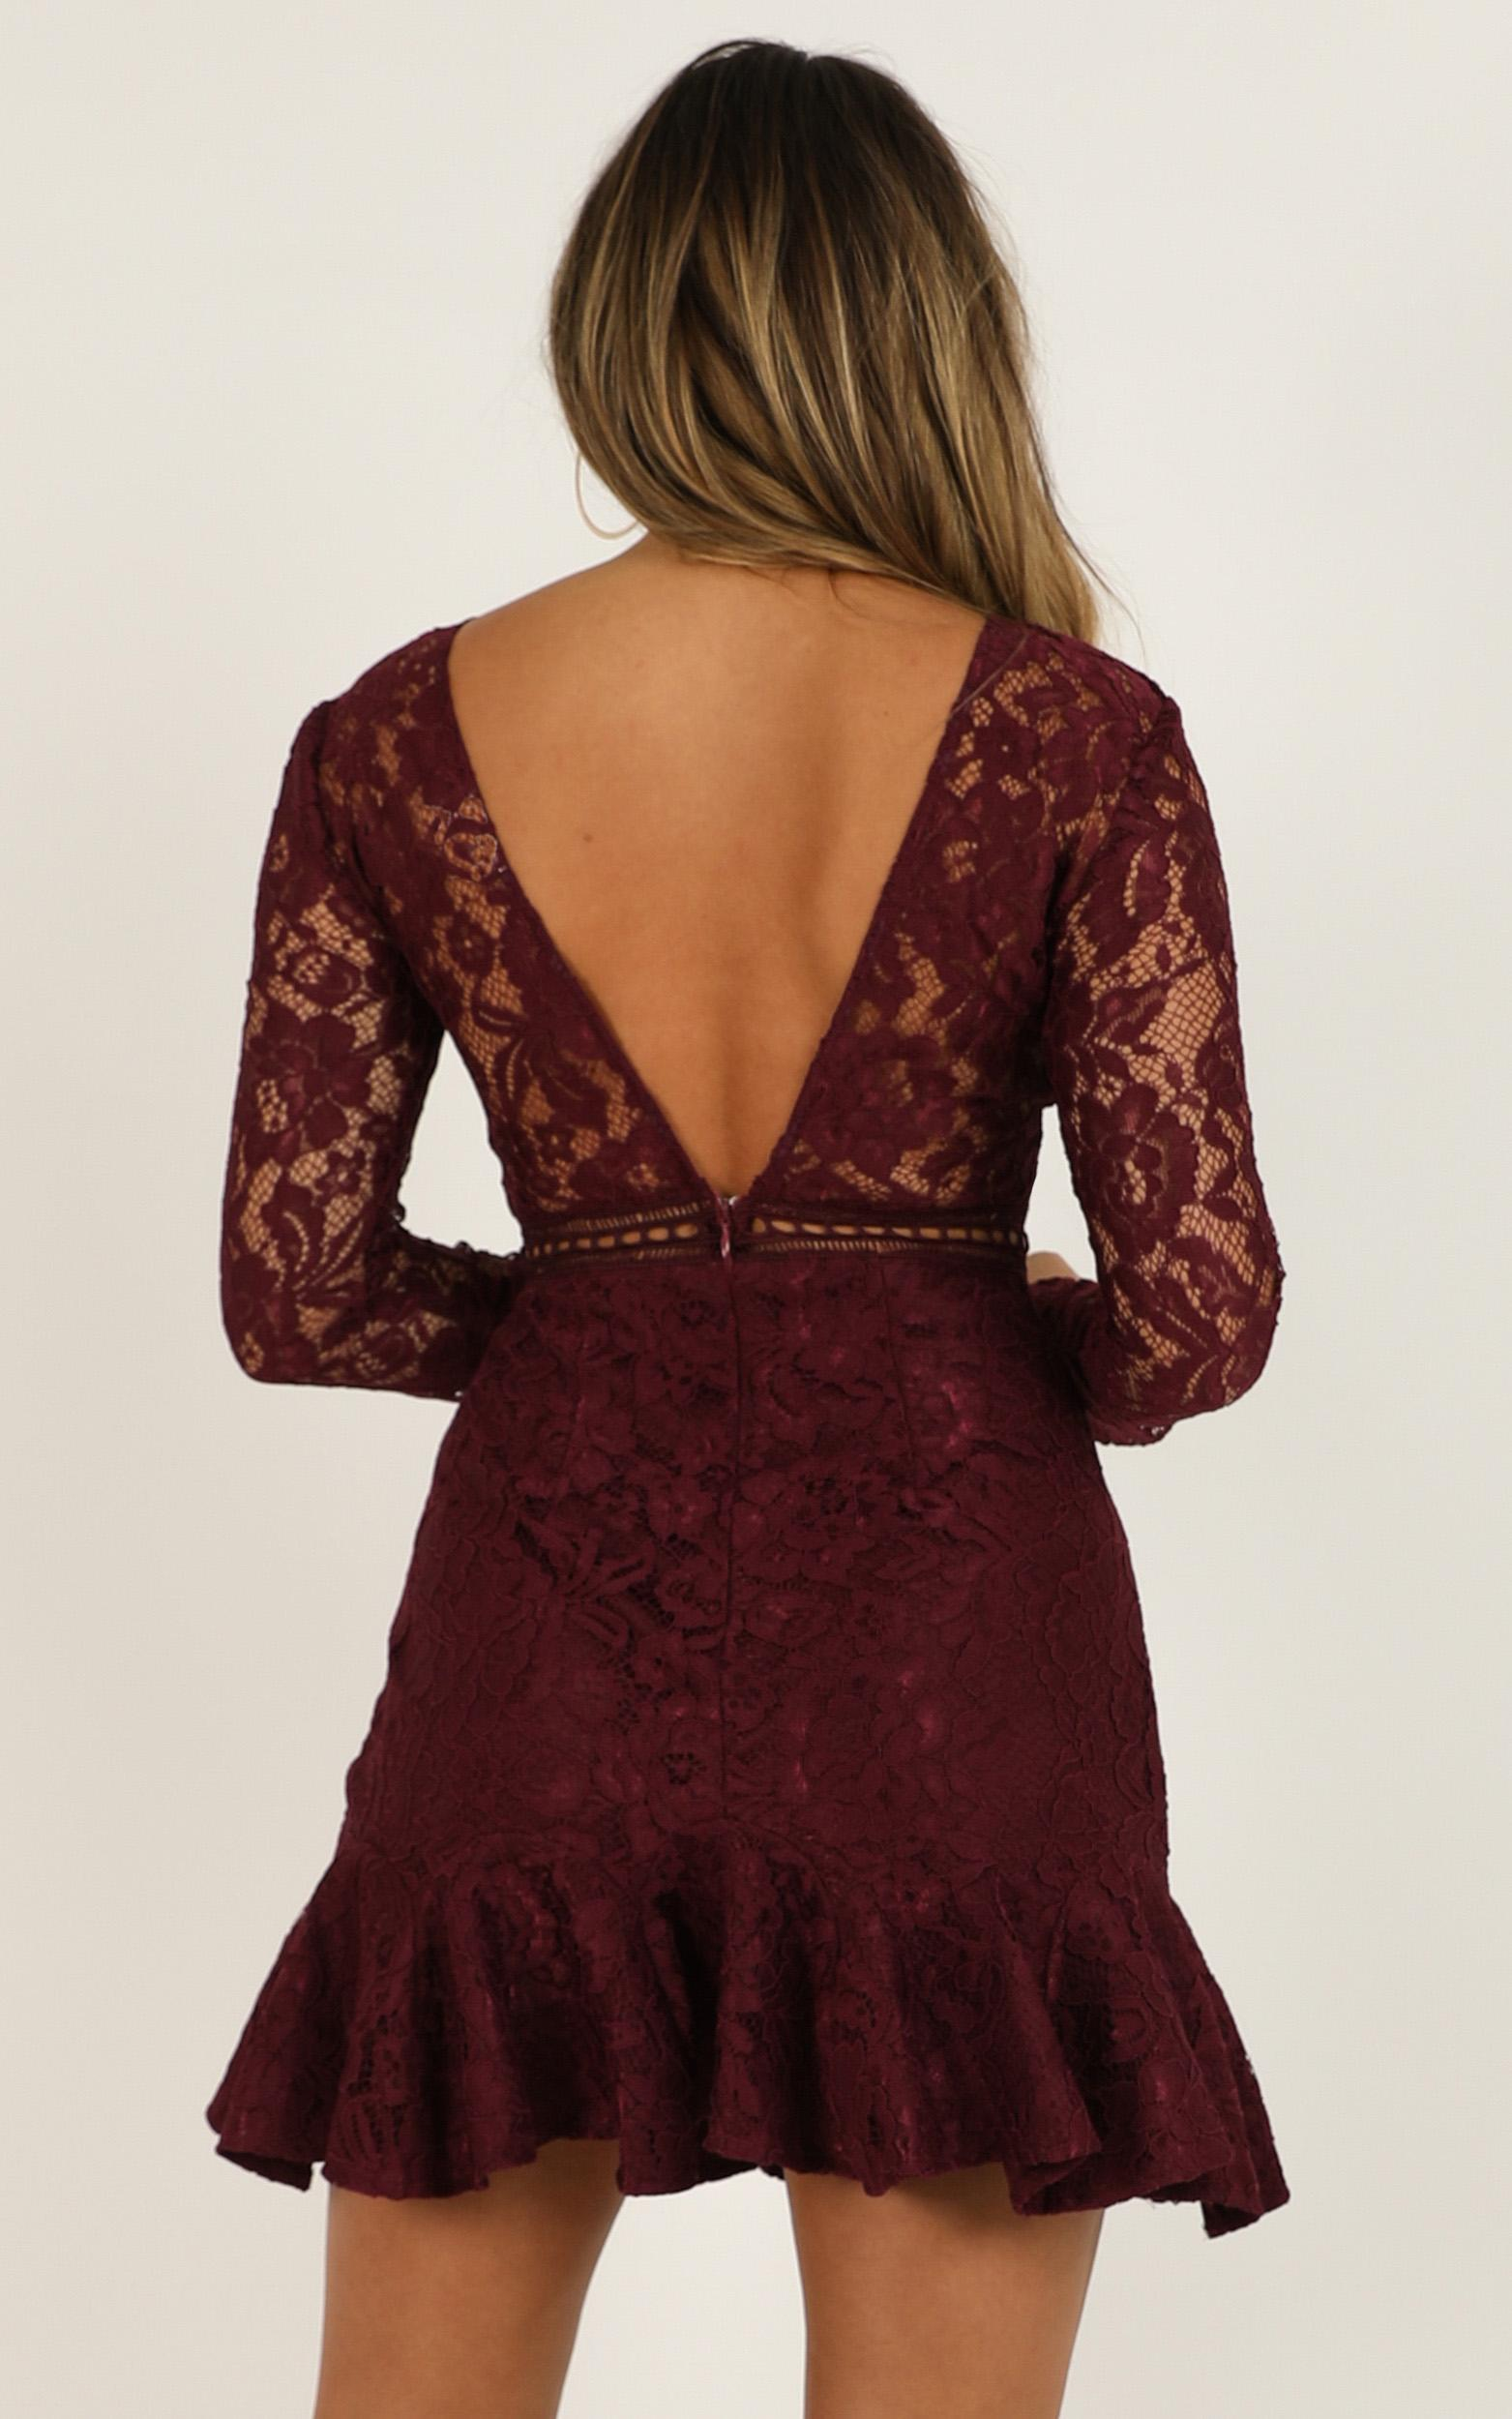 I Belong Dress in wine lace - 20 (XXXXL), Wine, hi-res image number null